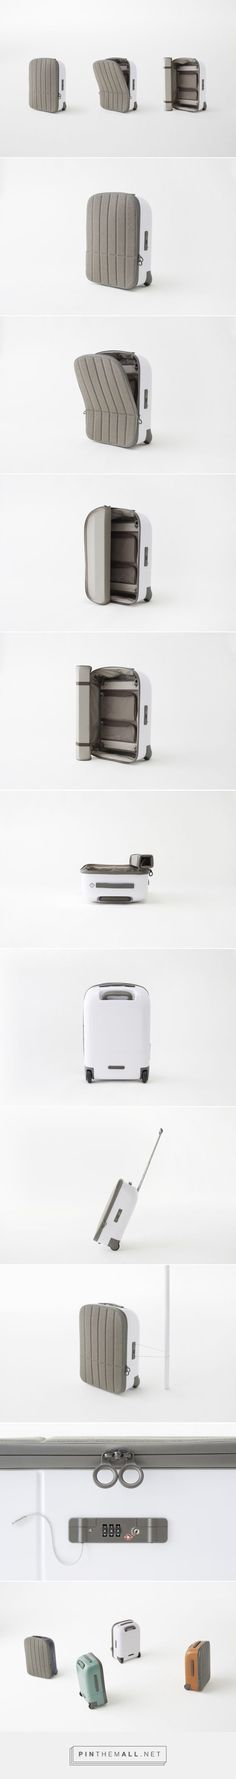 kamen suitcase for Fabbrica Pelletterie Milano - http://en.fpm.it/content/travel-hand_luggage | Designer: Nendo